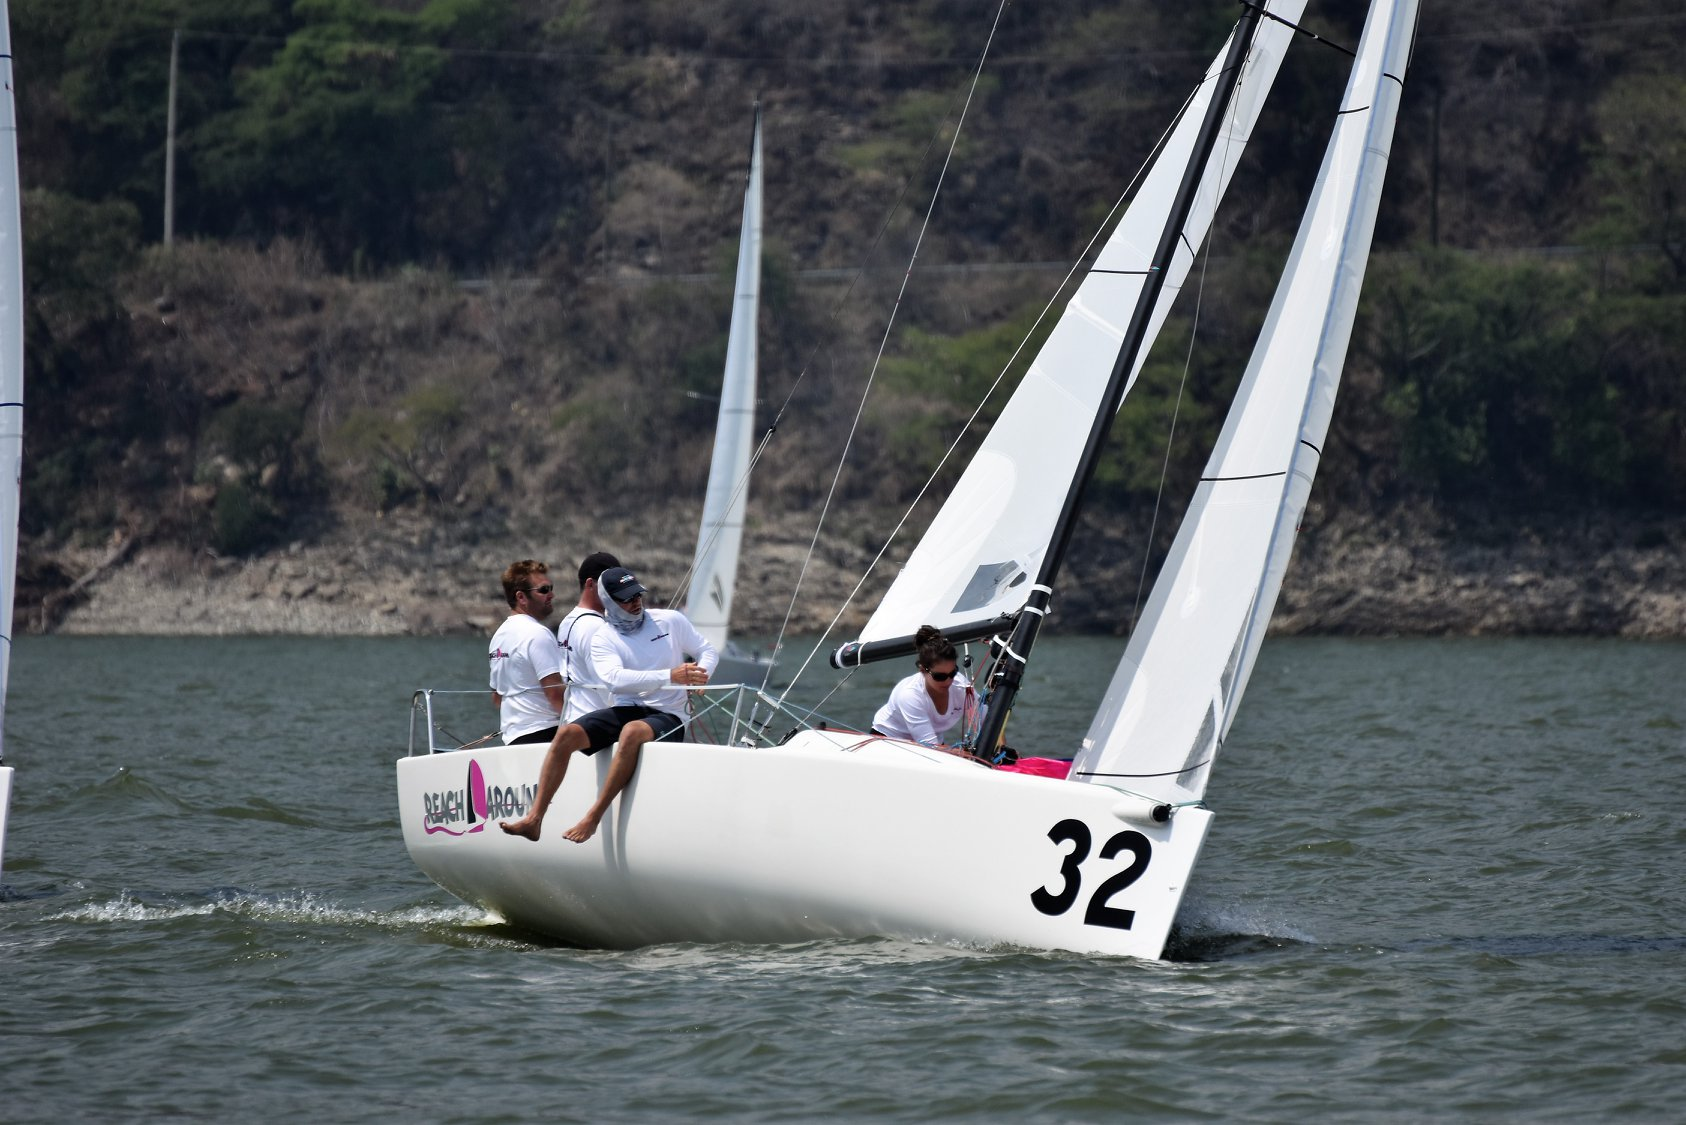 Thom Bowen and his winning Reach Around crew at the J/70 NAs. Photo courtesy of the J/70 Class Association Facebook page